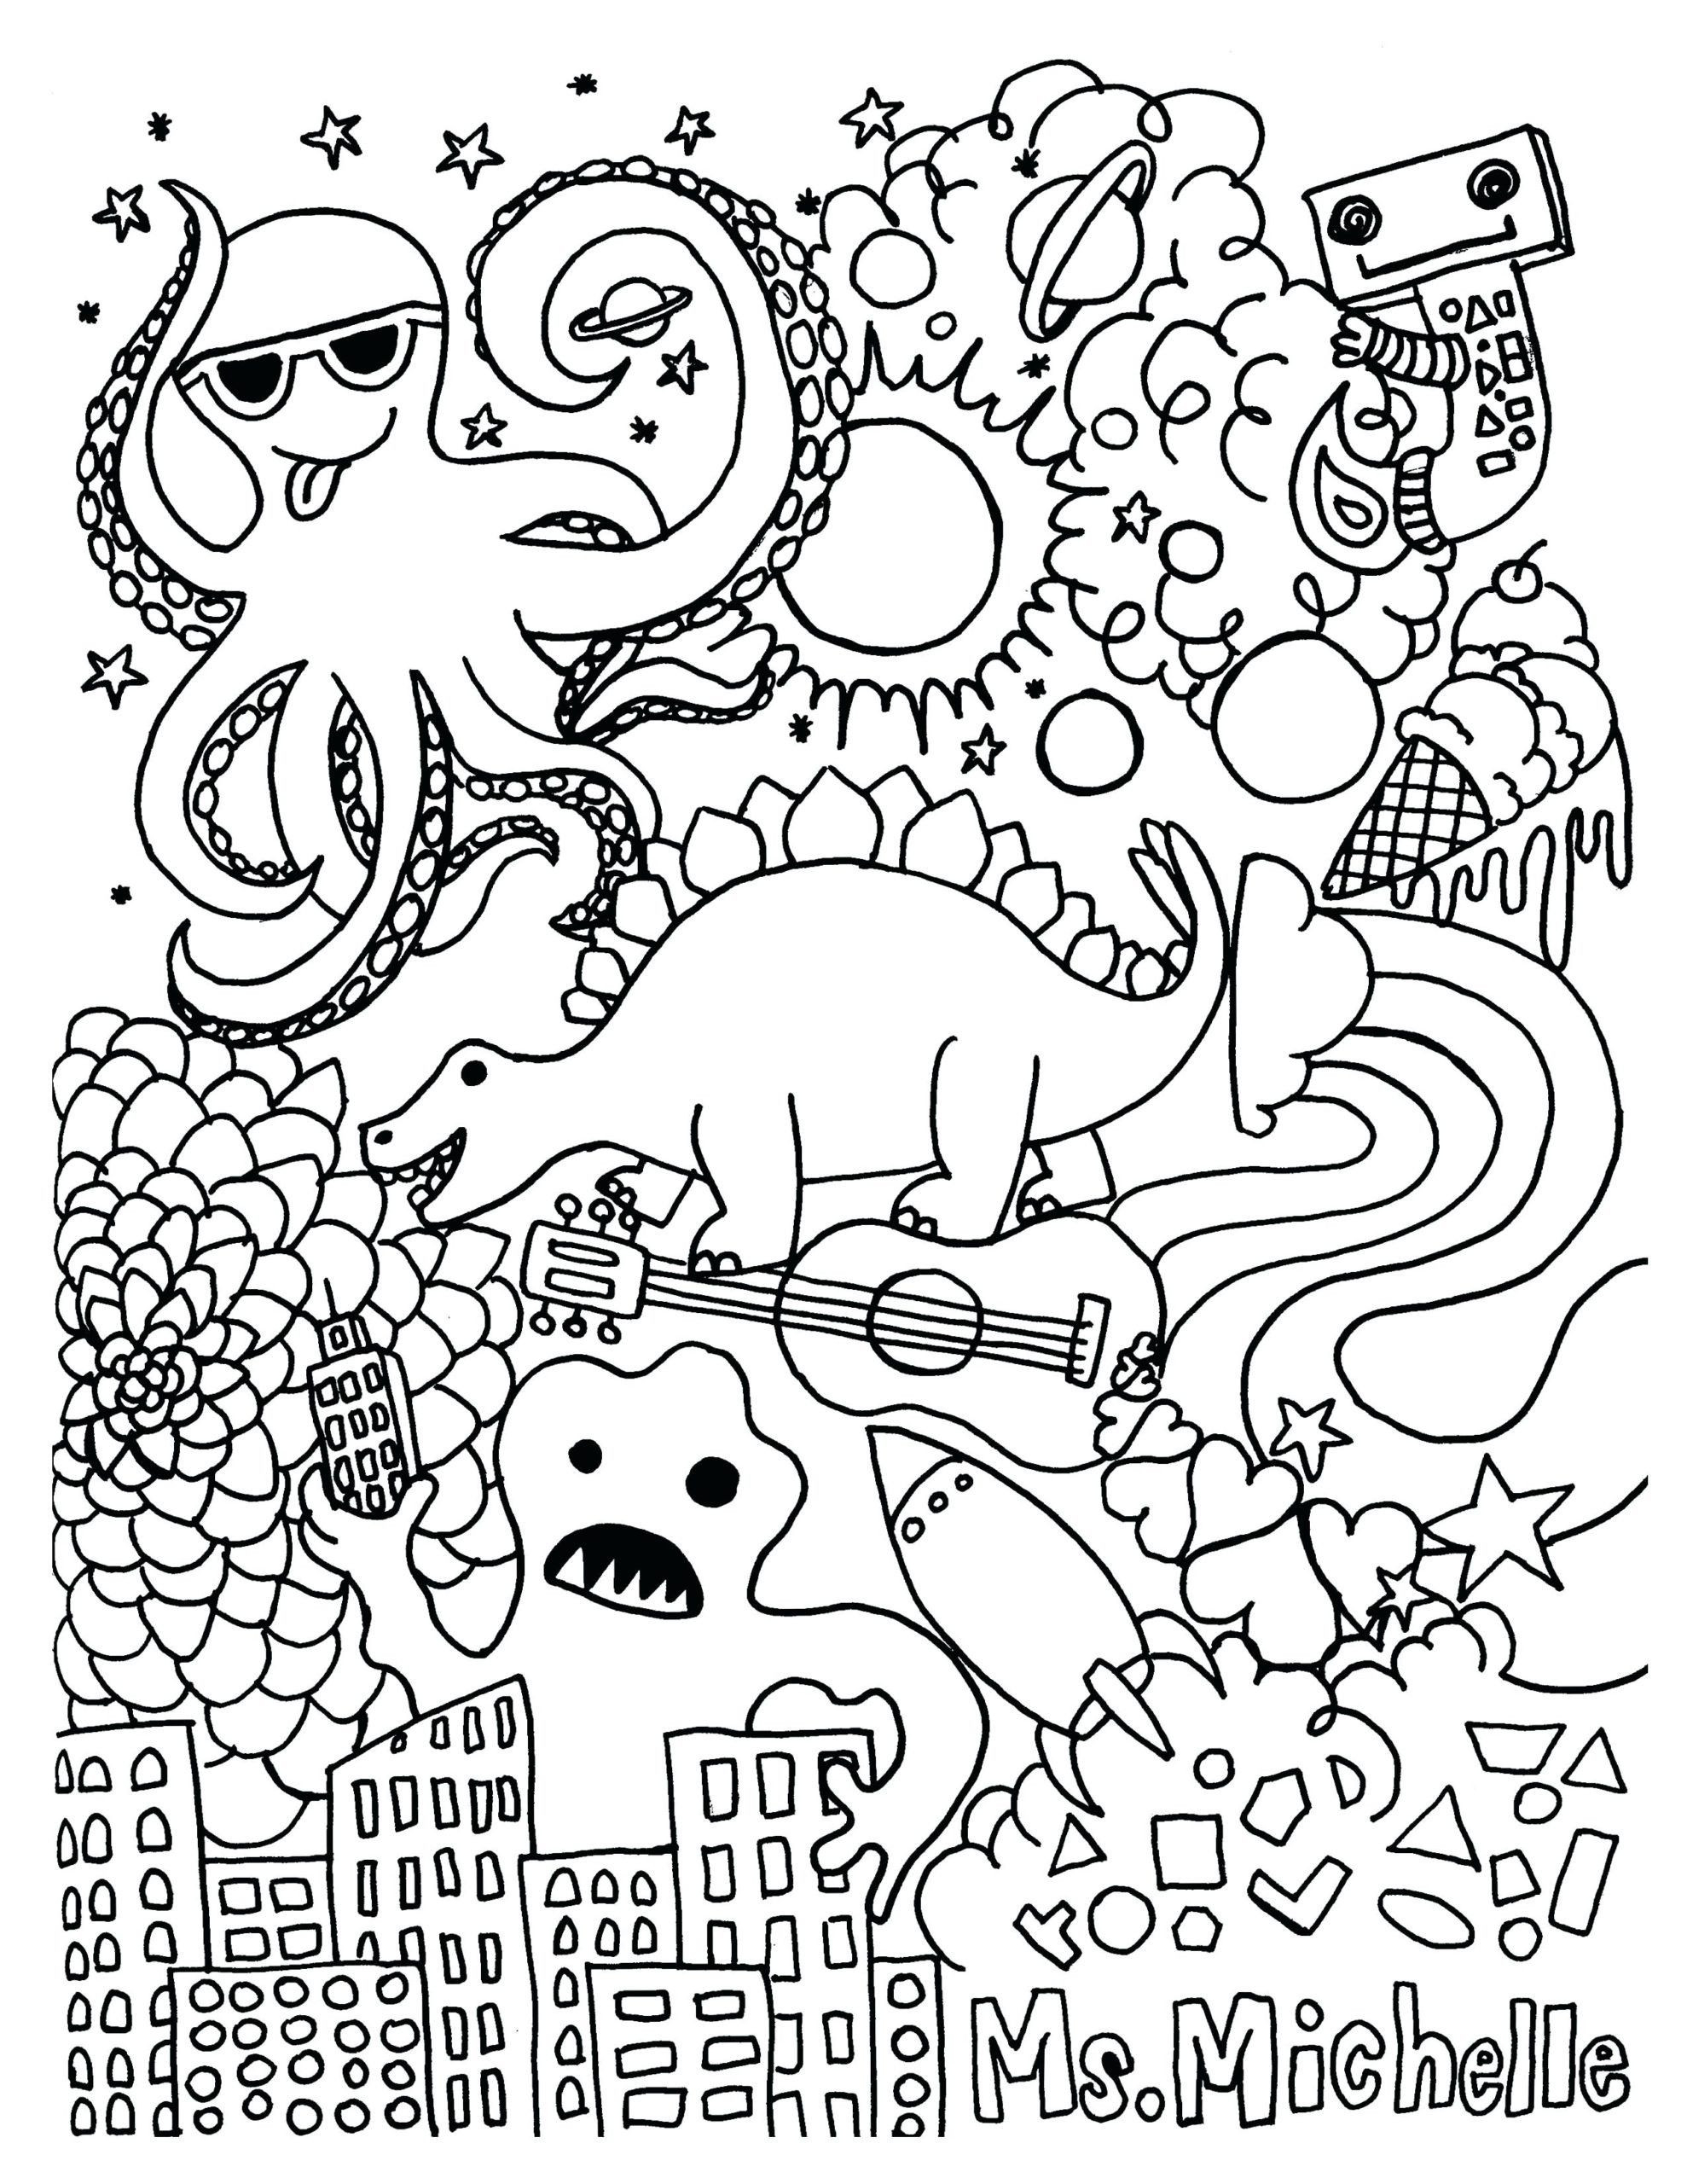 Coloring Pages : Printable Activity Pages For Kids Best Of 6